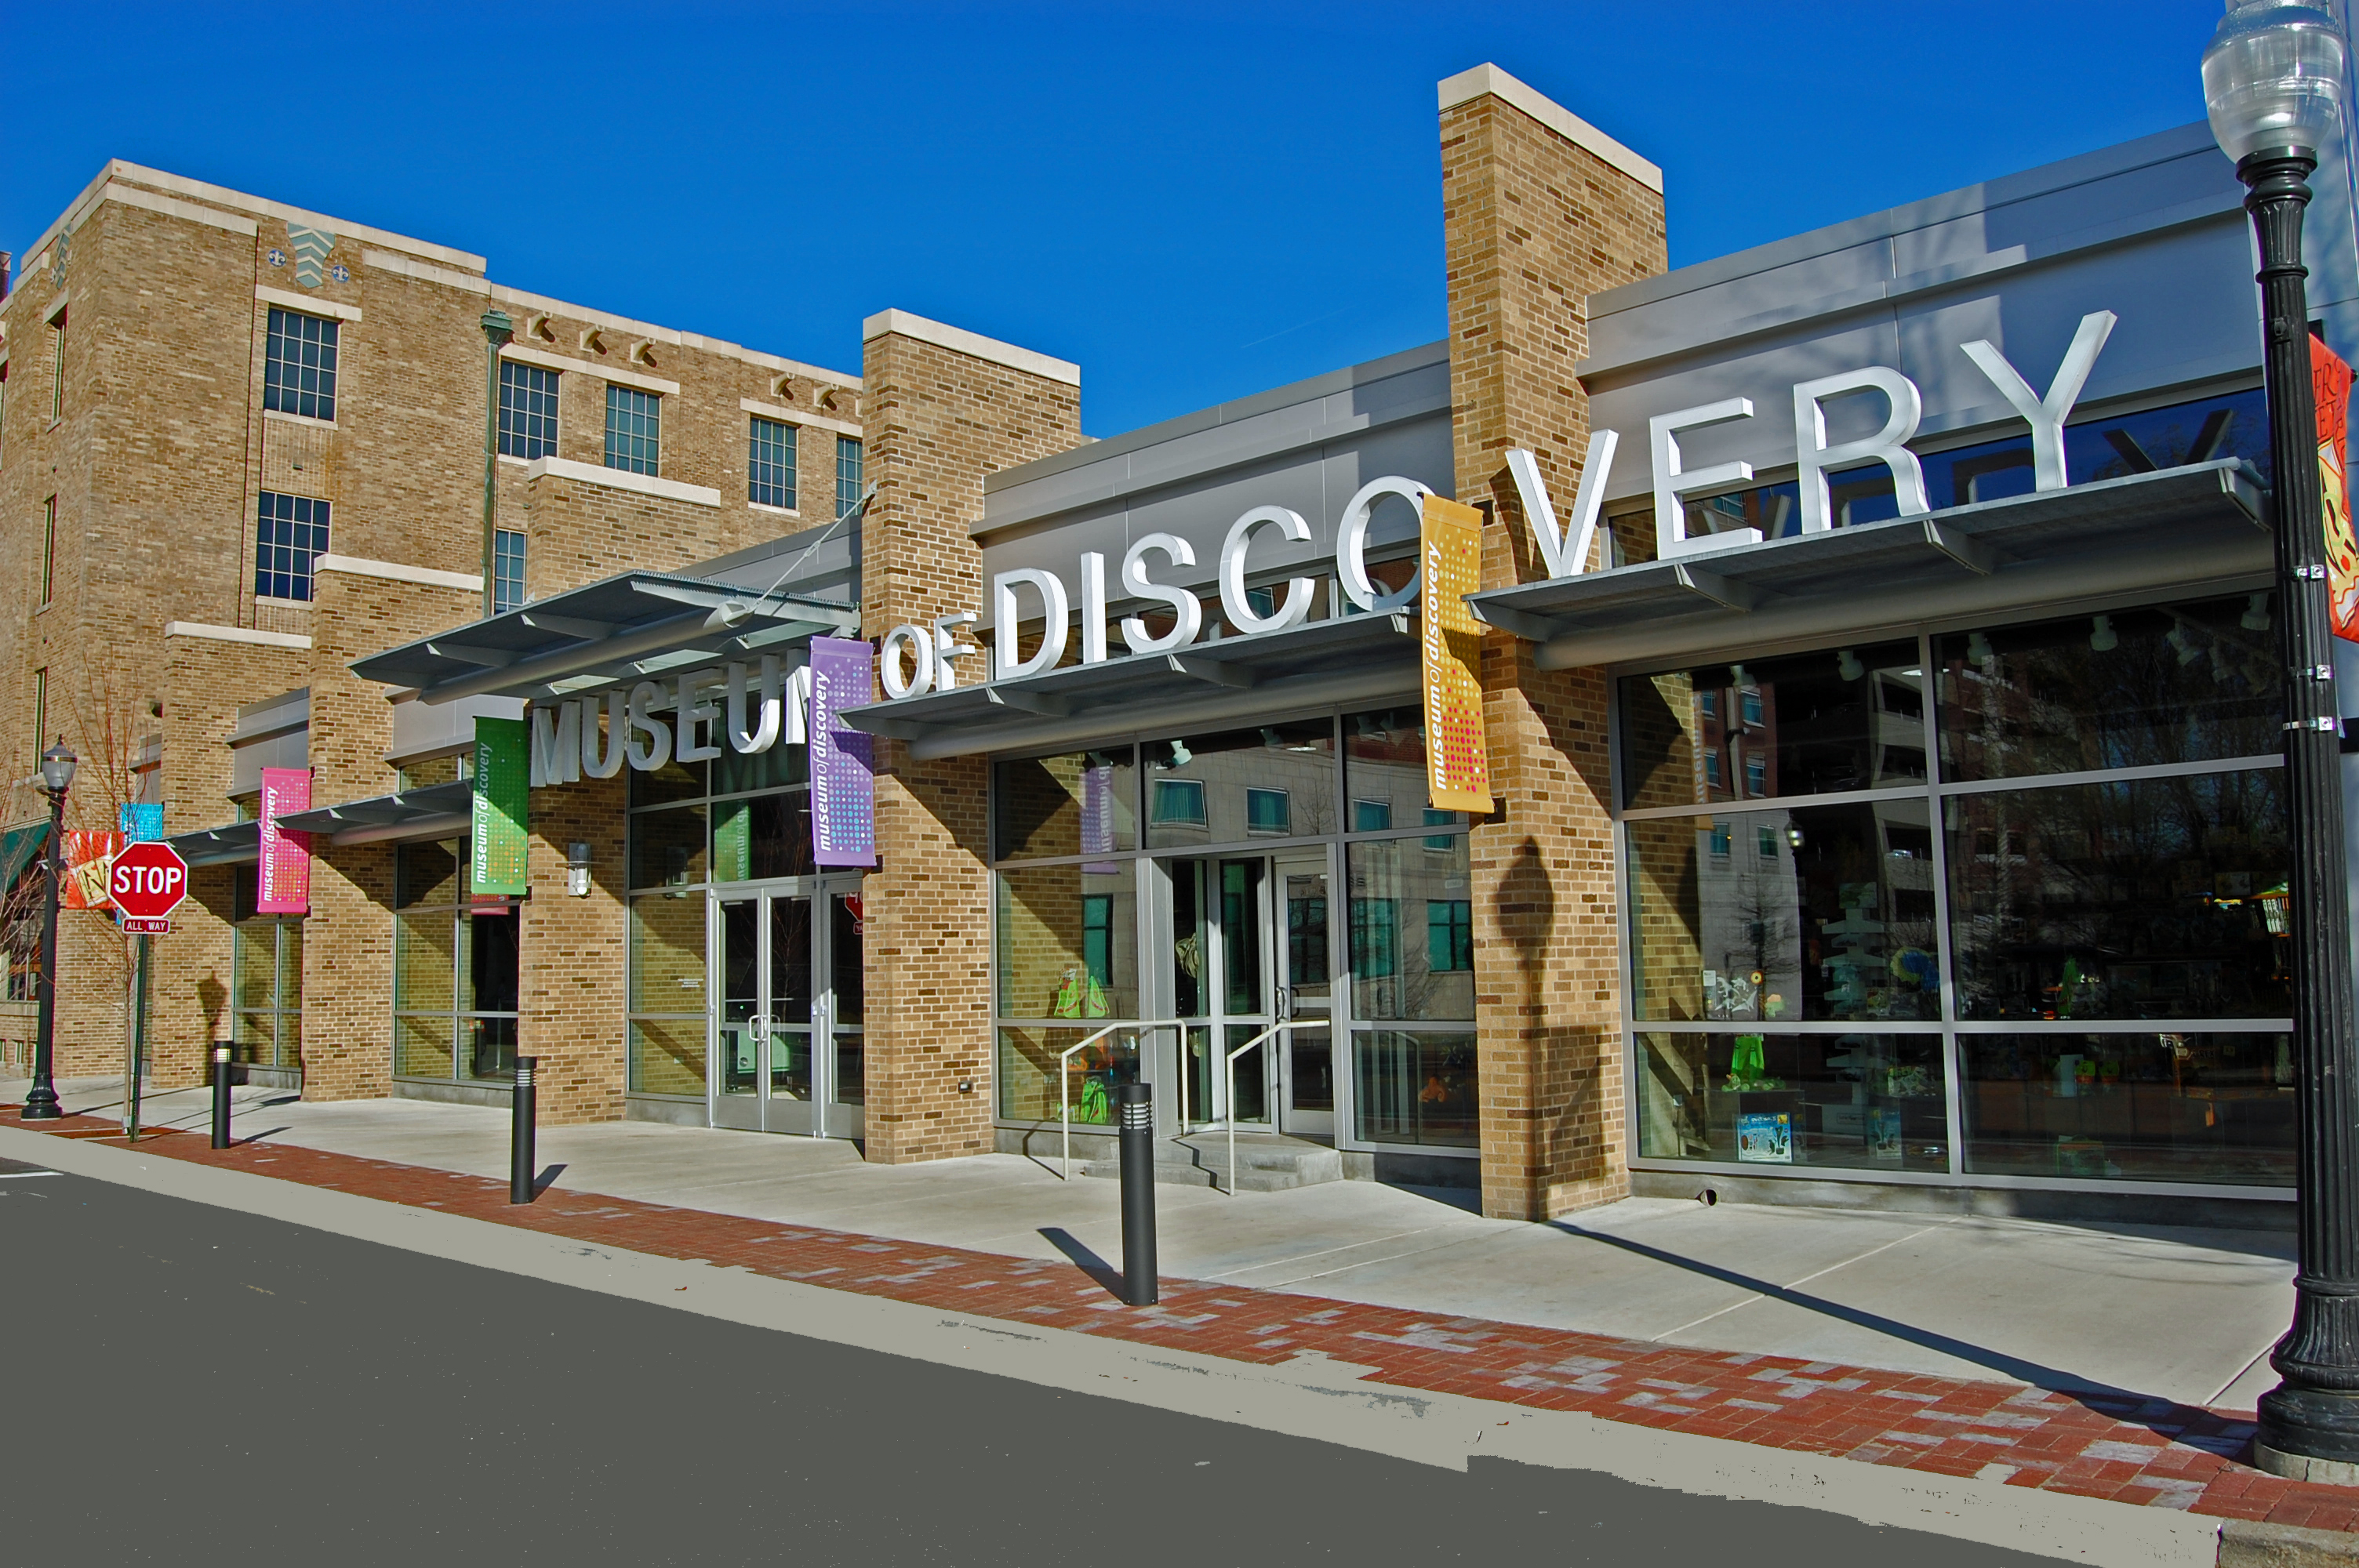 Museum of Discovery